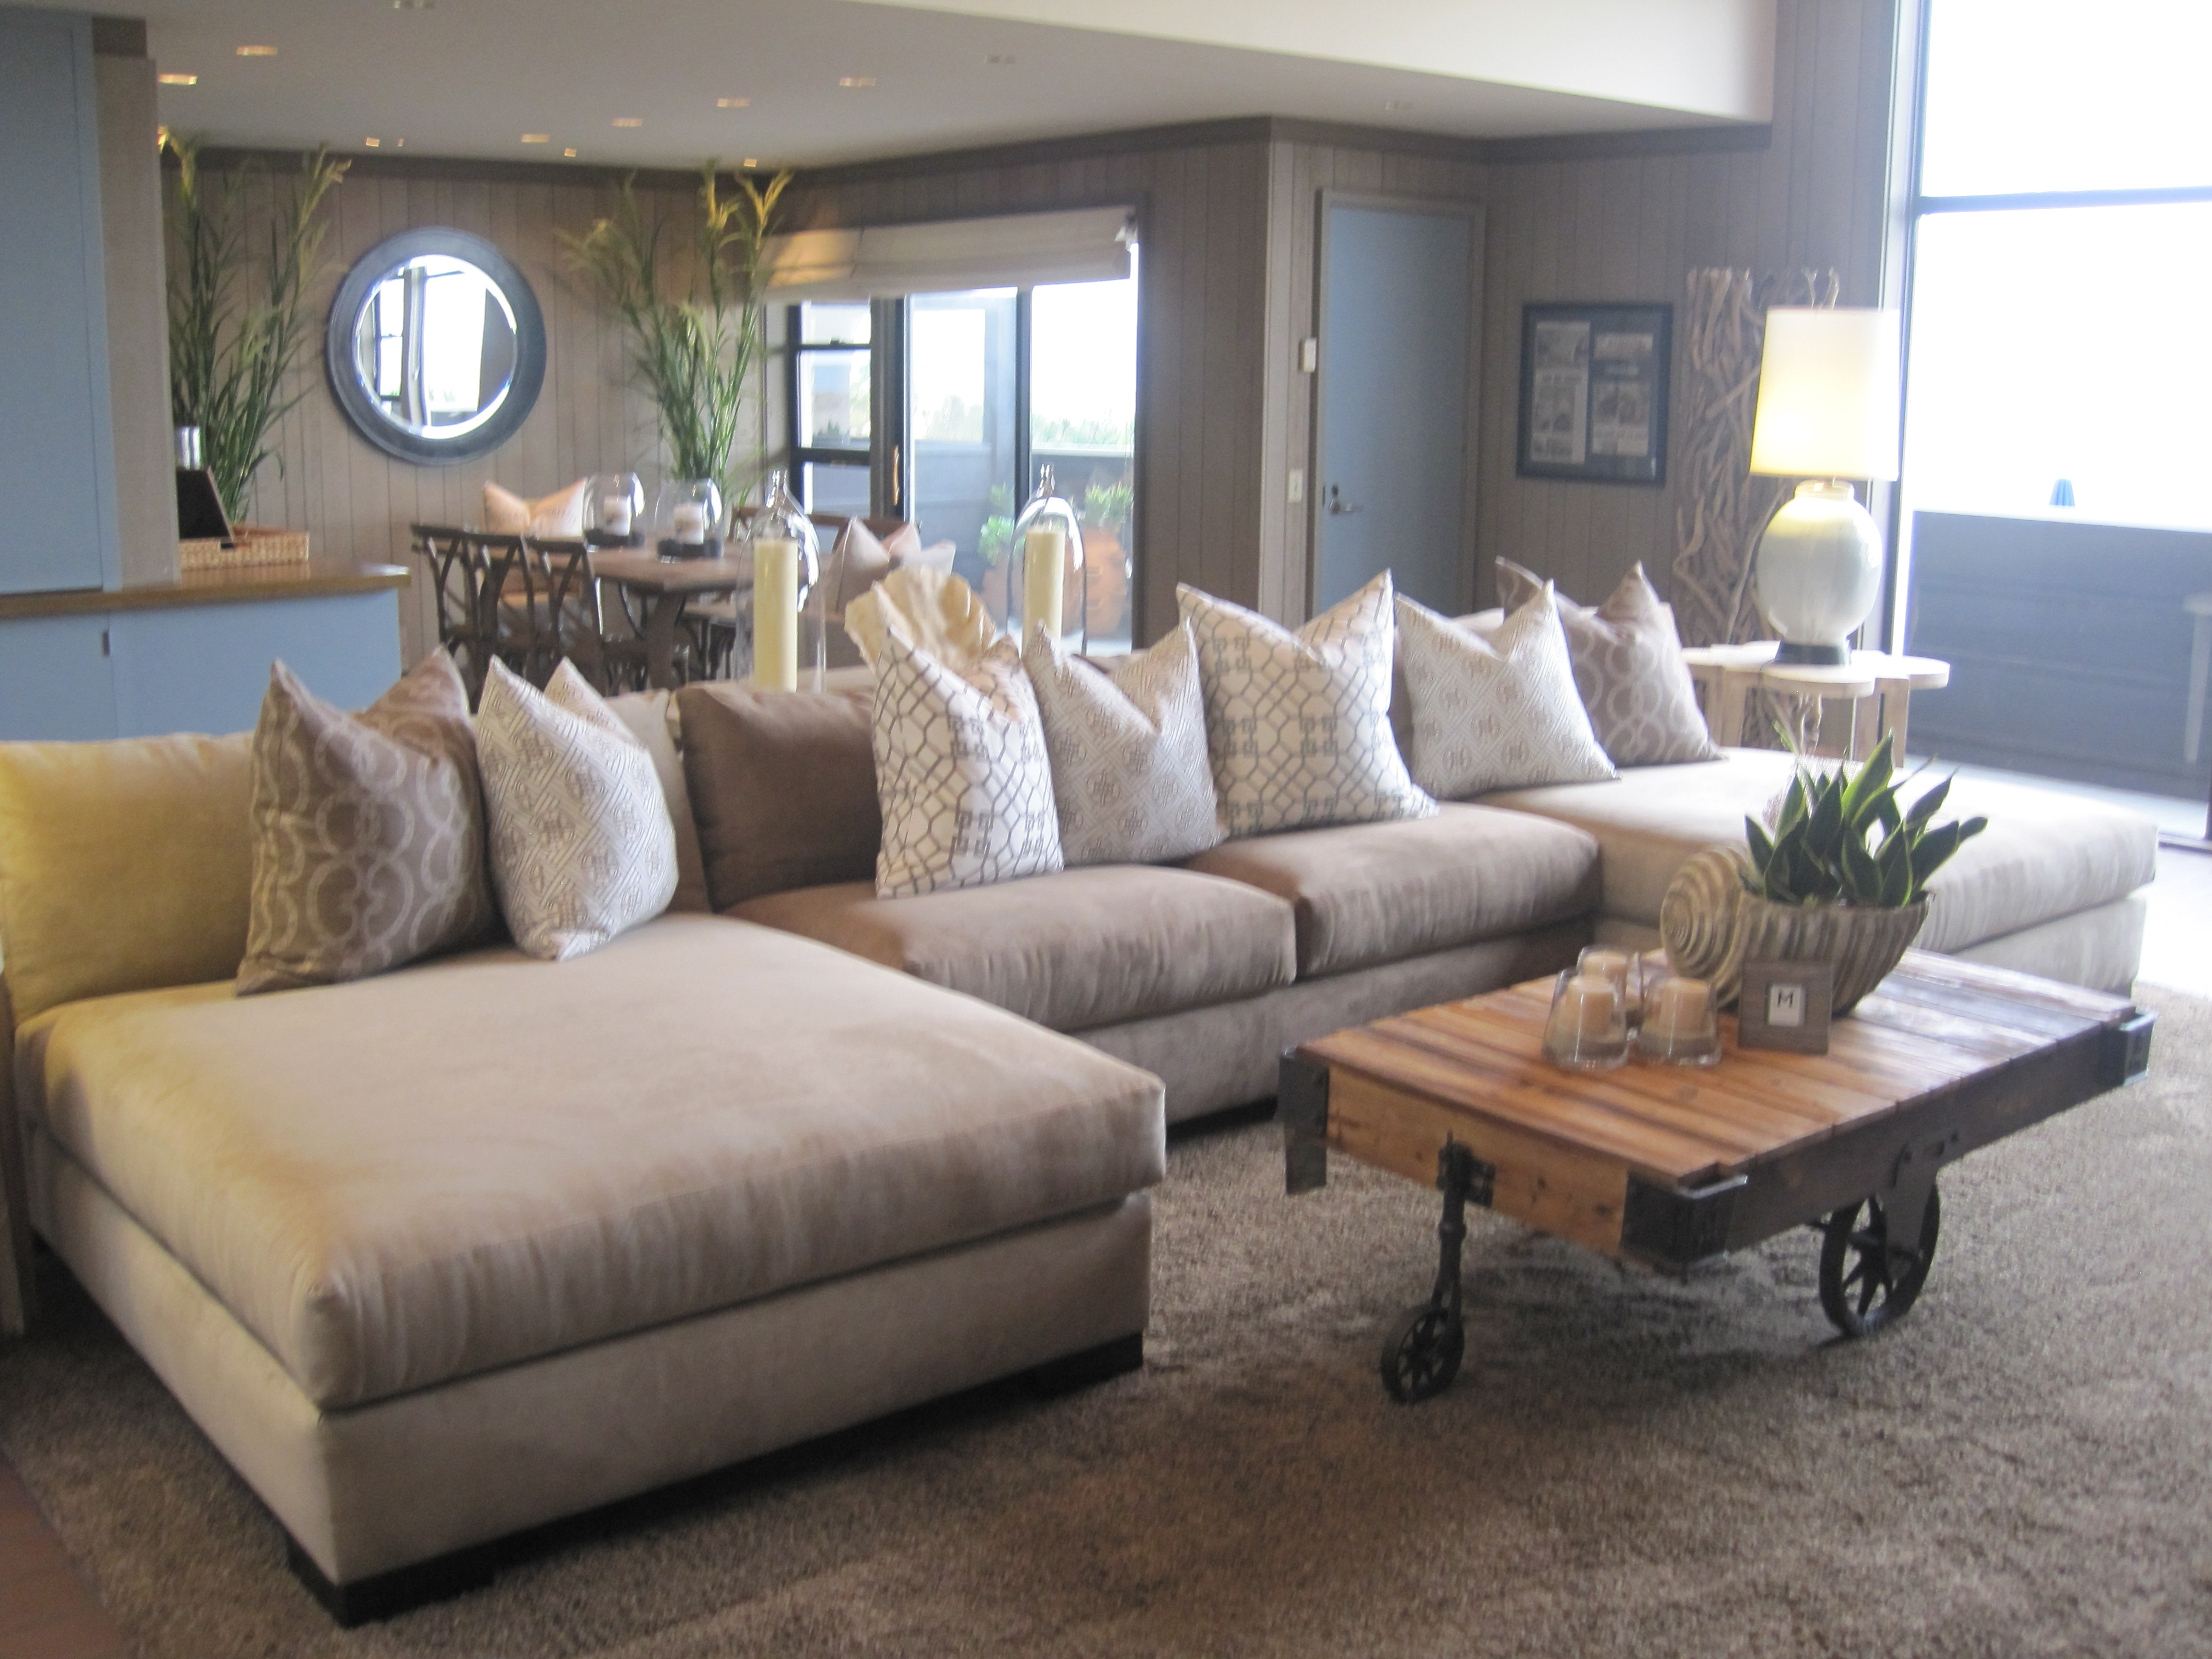 Sectional Sofas With Double Chaise Throughout Latest Double Chaise Sectional Sofa – Tanningworldexpo (View 7 of 15)